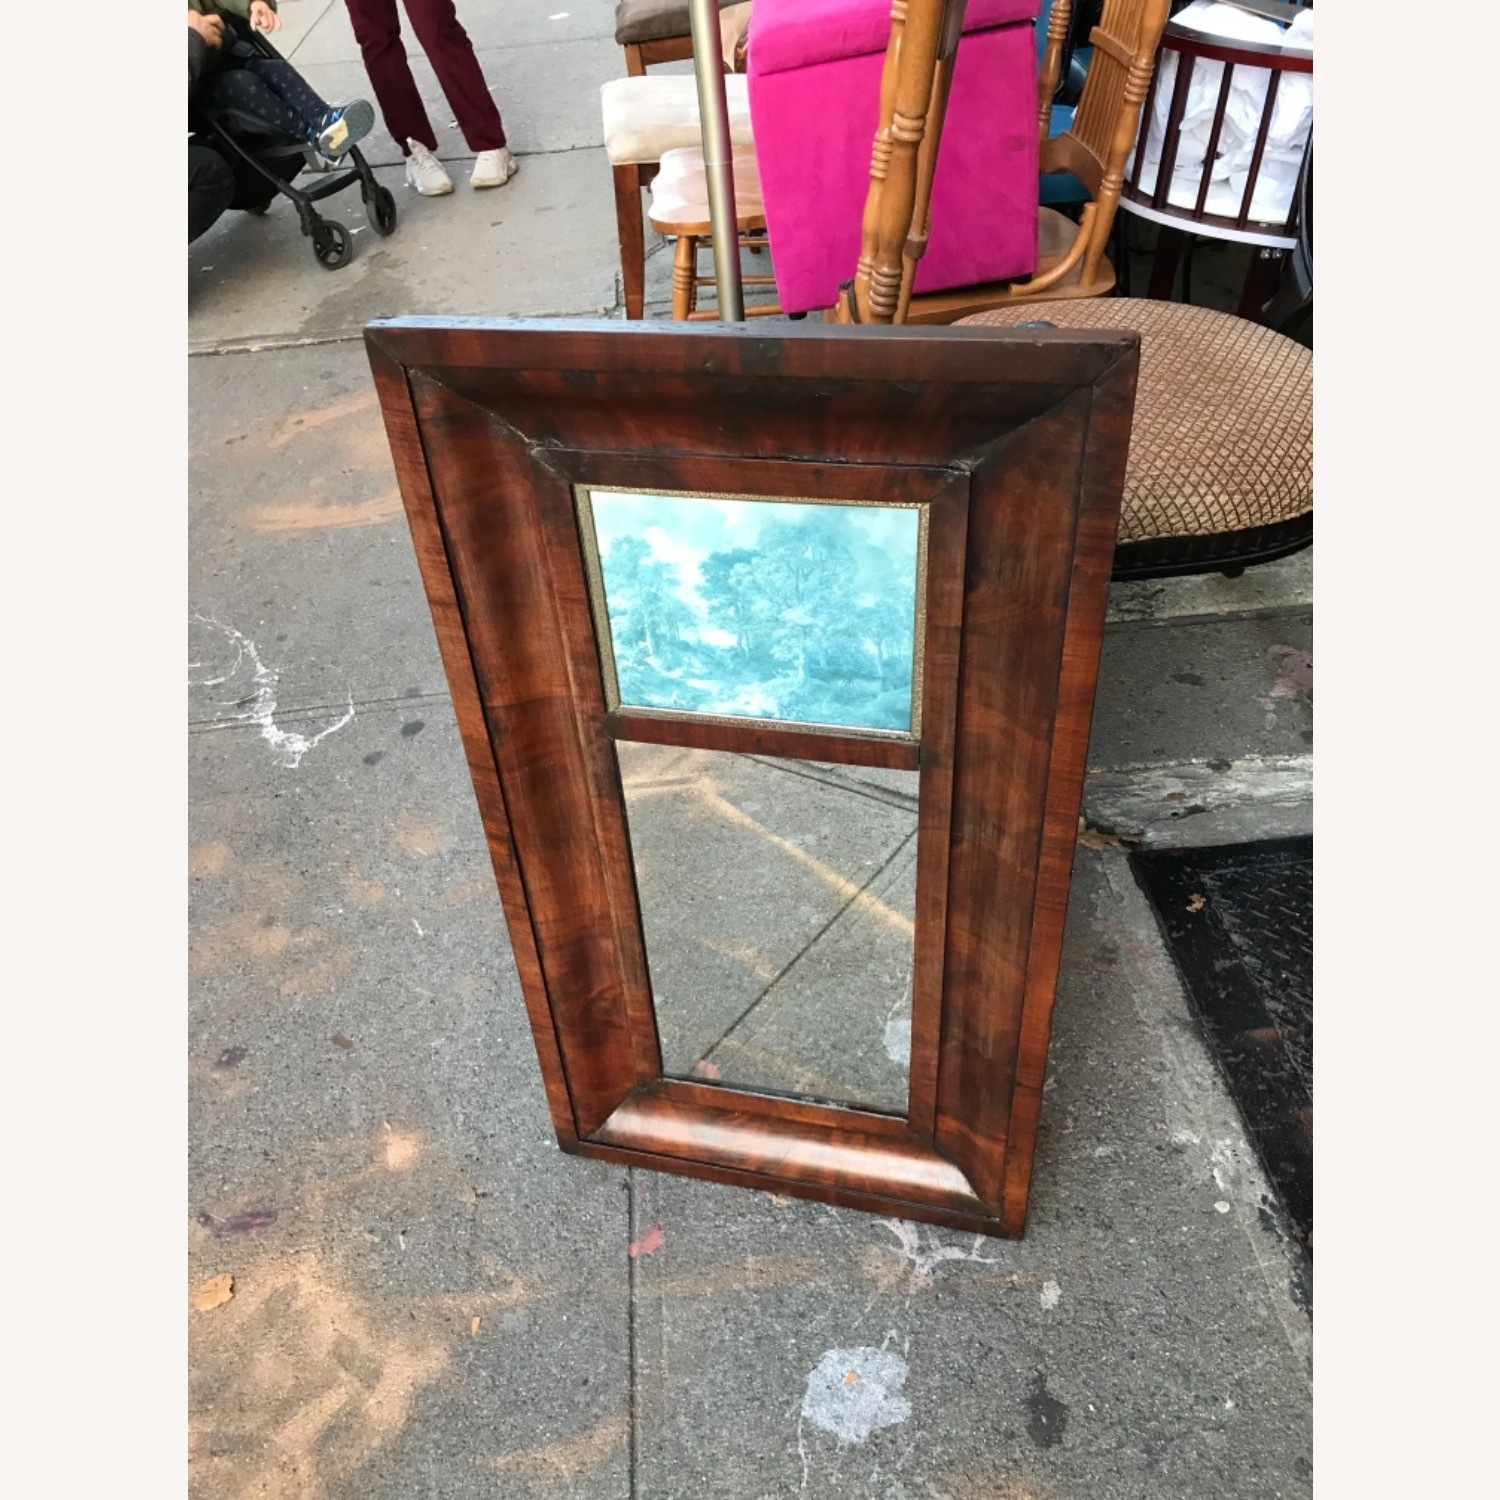 Antique 1900s Mahogany Framed Mirror w/ Picture - image-6